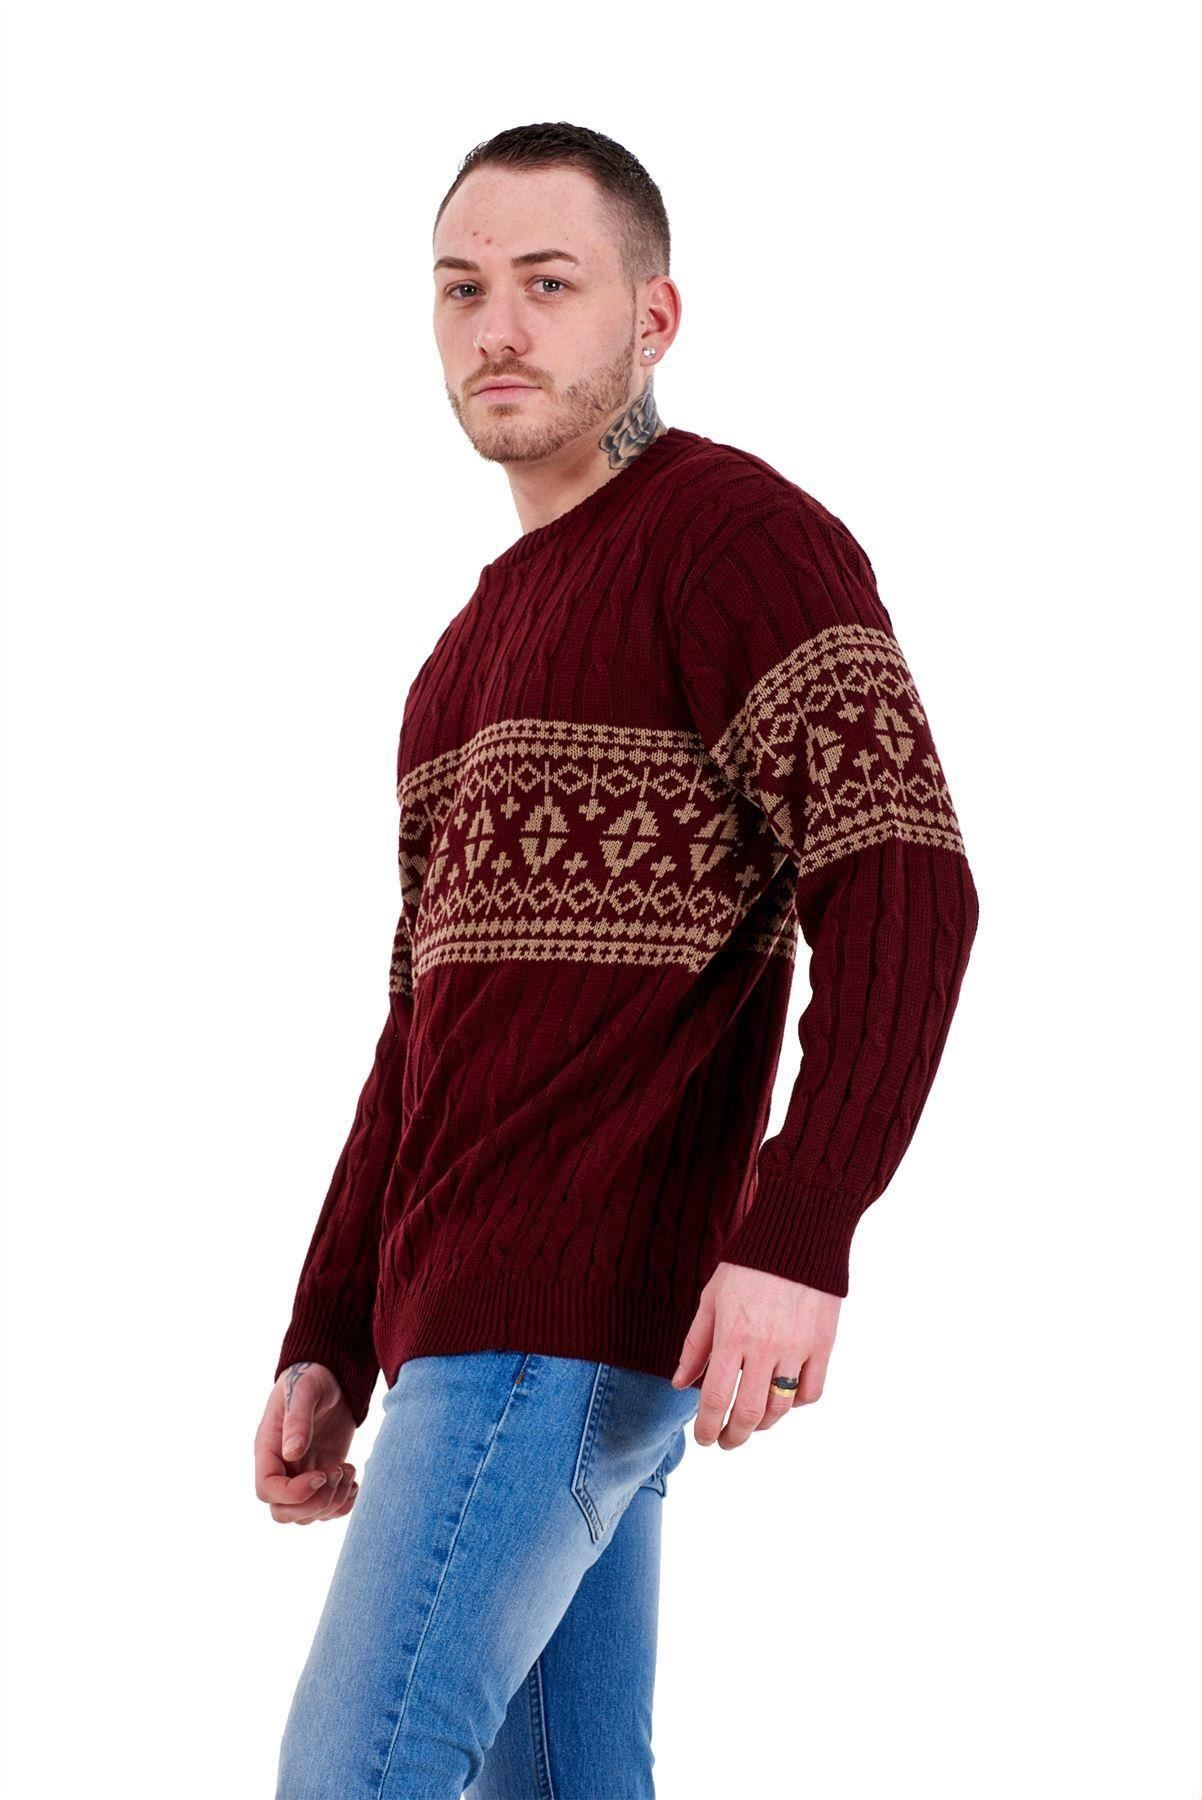 Mens-New-Cable-Knit-Jacquard-Long-Sleeve-Pullover-Jumper-Sweater-S-to-XL thumbnail 24